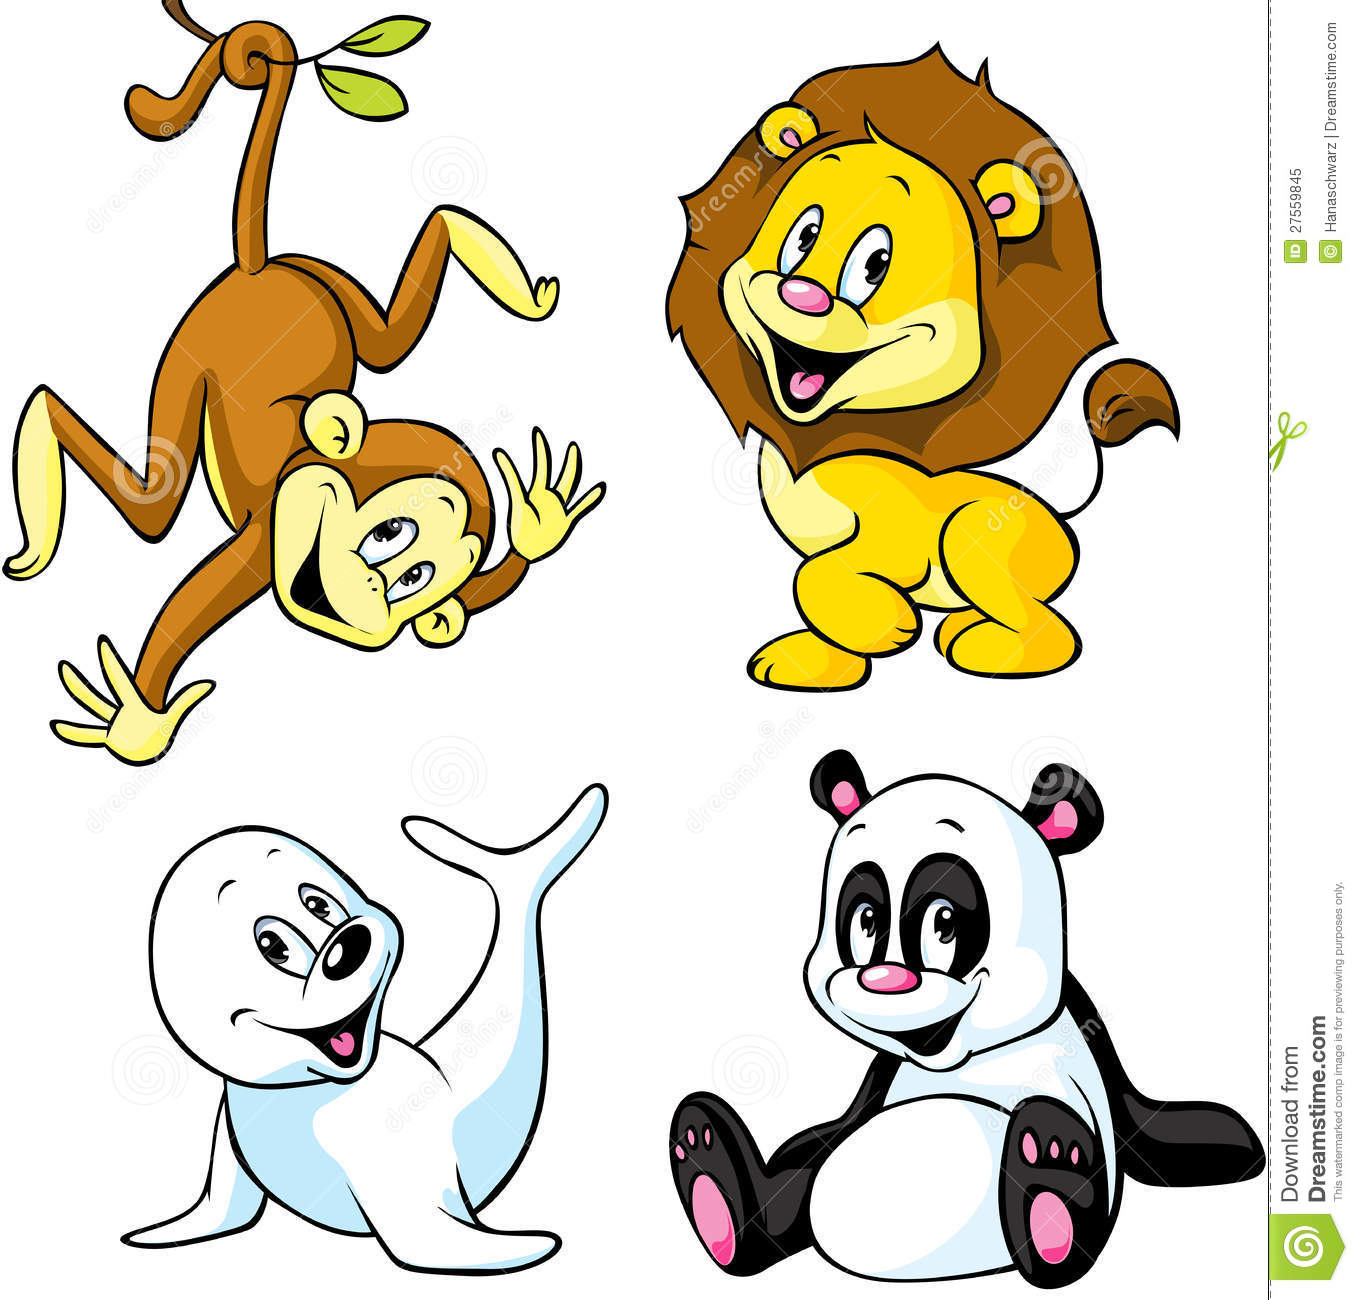 Cute Animal Cartoon Royalty Free Stock Photo - Image: 27559845